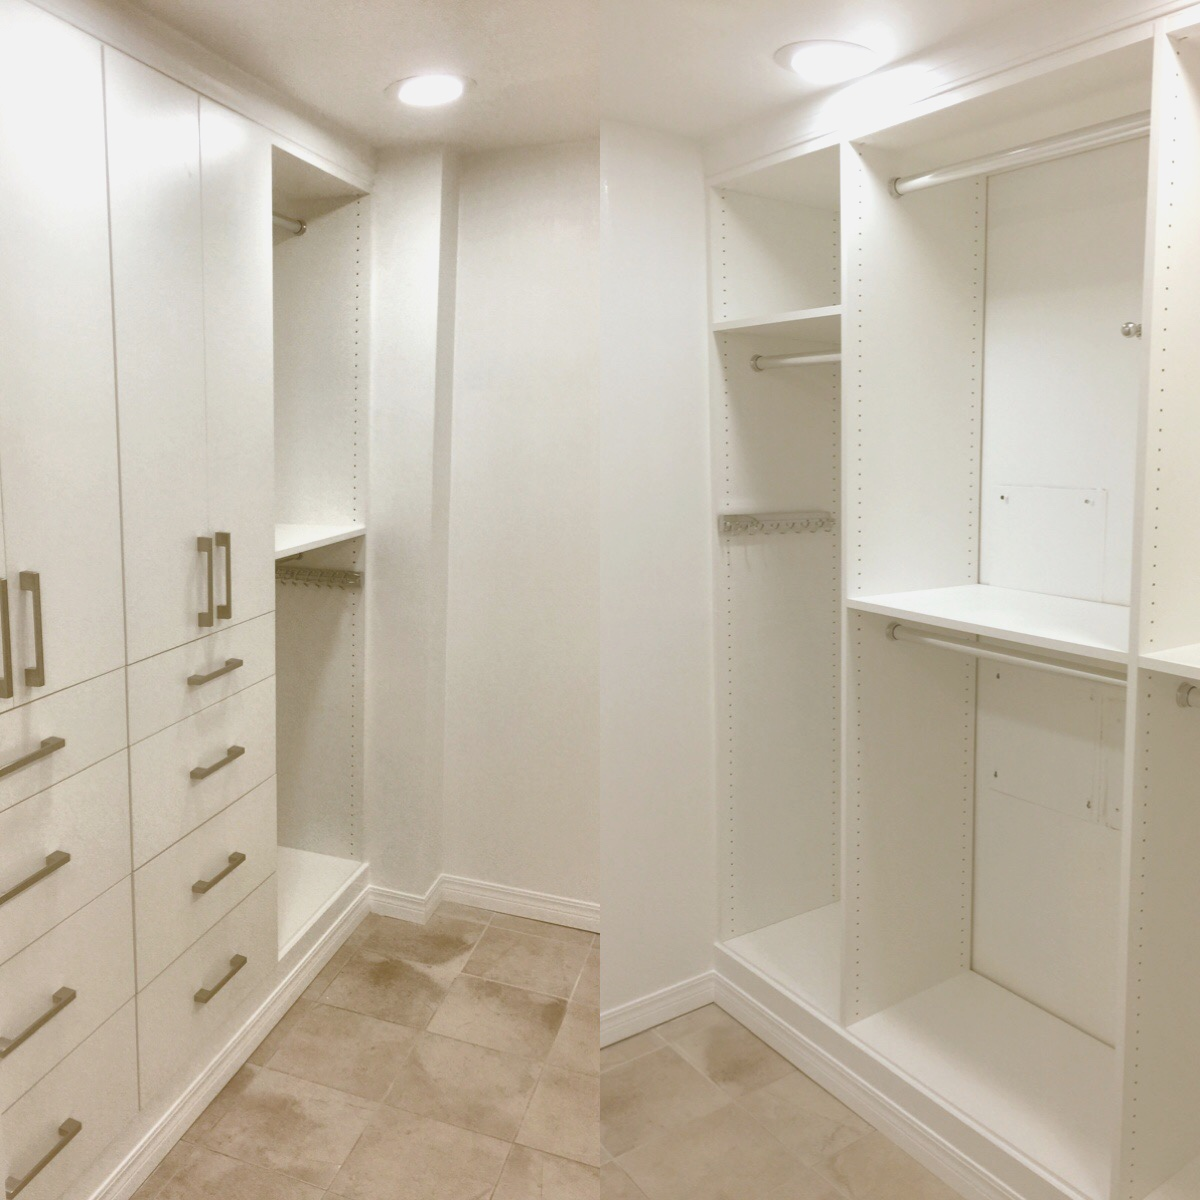 Crown and base molding, custom hardware and excellent lighting complete this classic white closet by Closets of Tulsa.  Call Closets of Tulsa  today for your FREE consultation and 3-D closet design:  918.609.0214